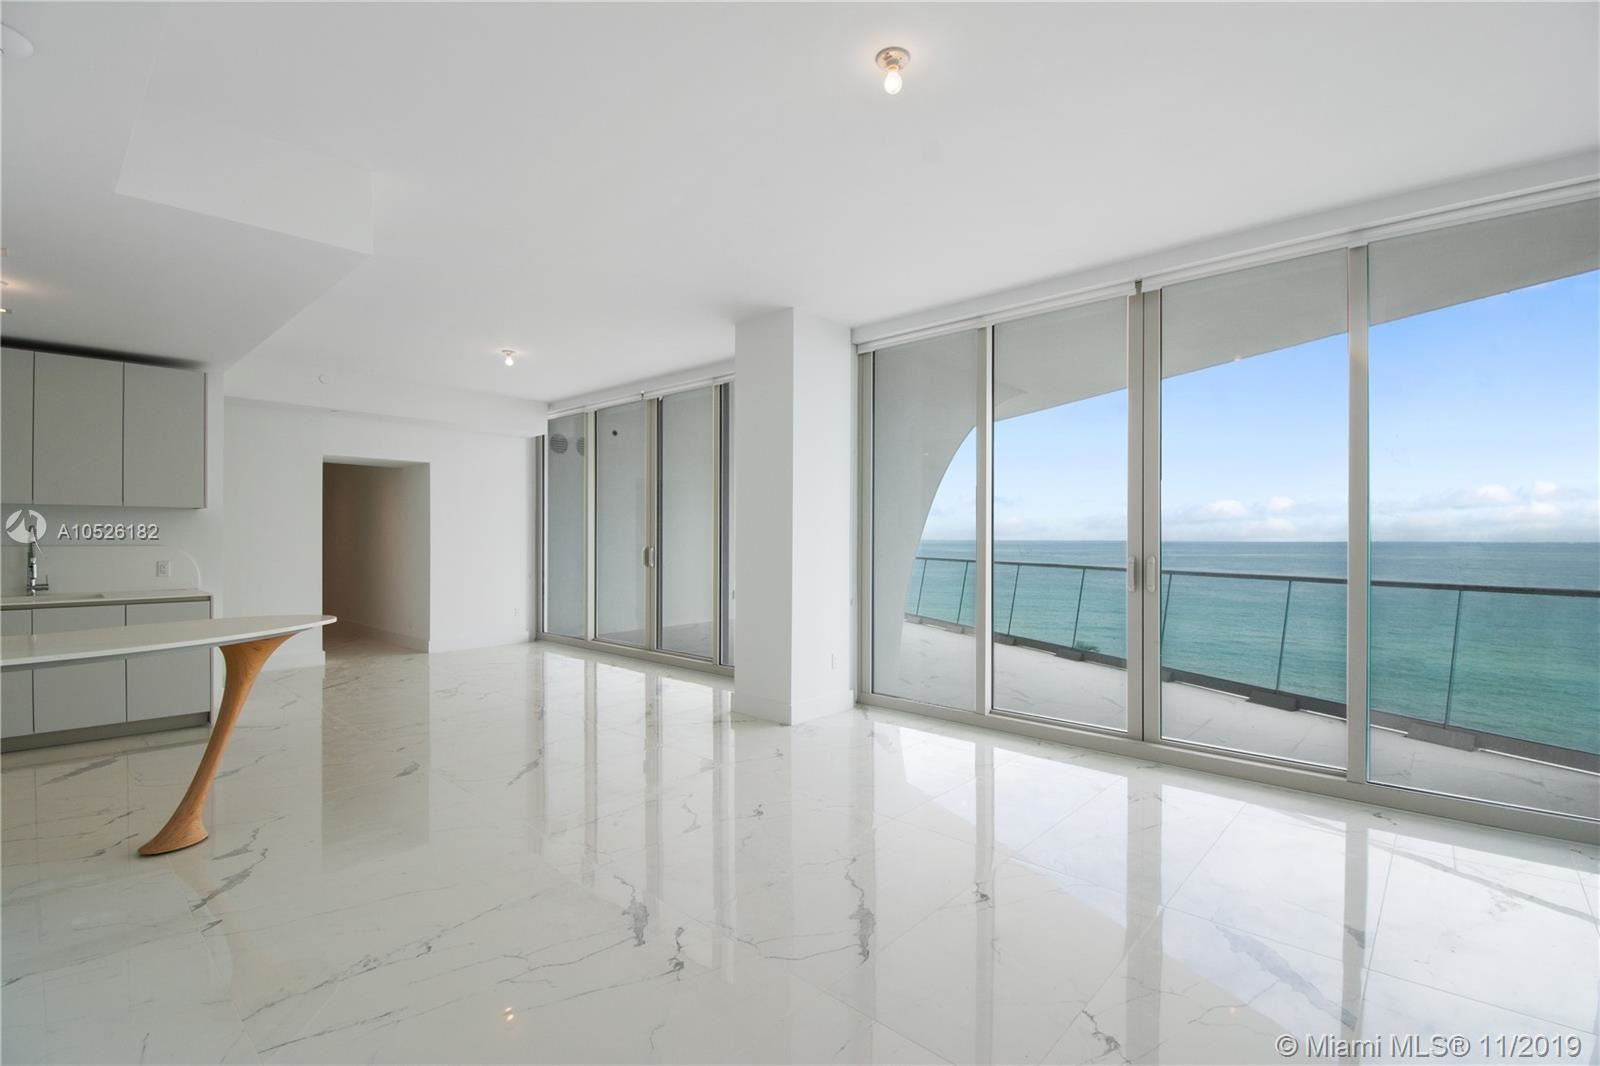 16901 Collins Ave. #702, Sunny Isles, FL 33160 - #: A10526182